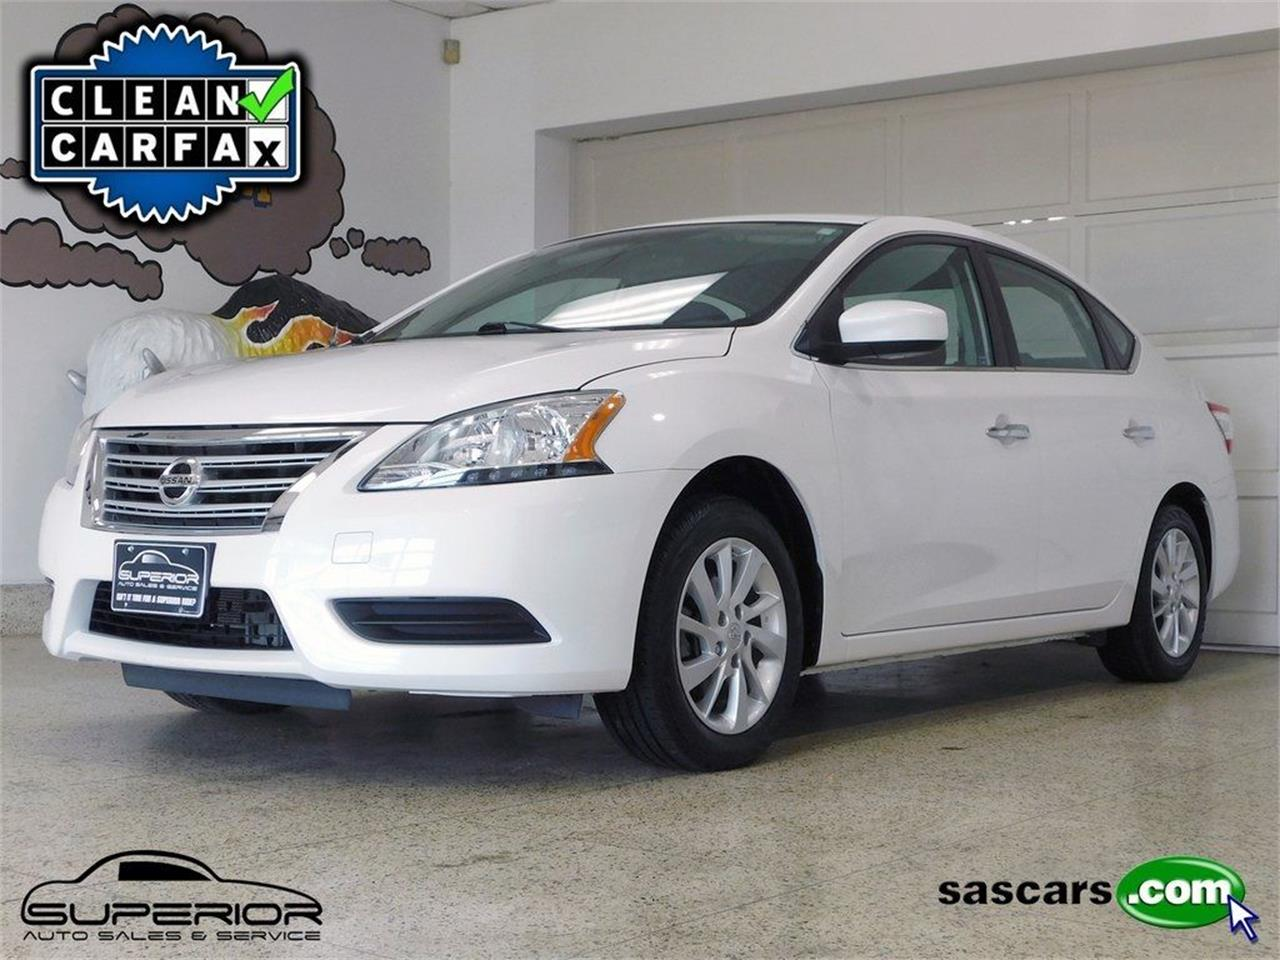 2015 Nissan Sentra (CC-1393415) for sale in Hamburg, New York